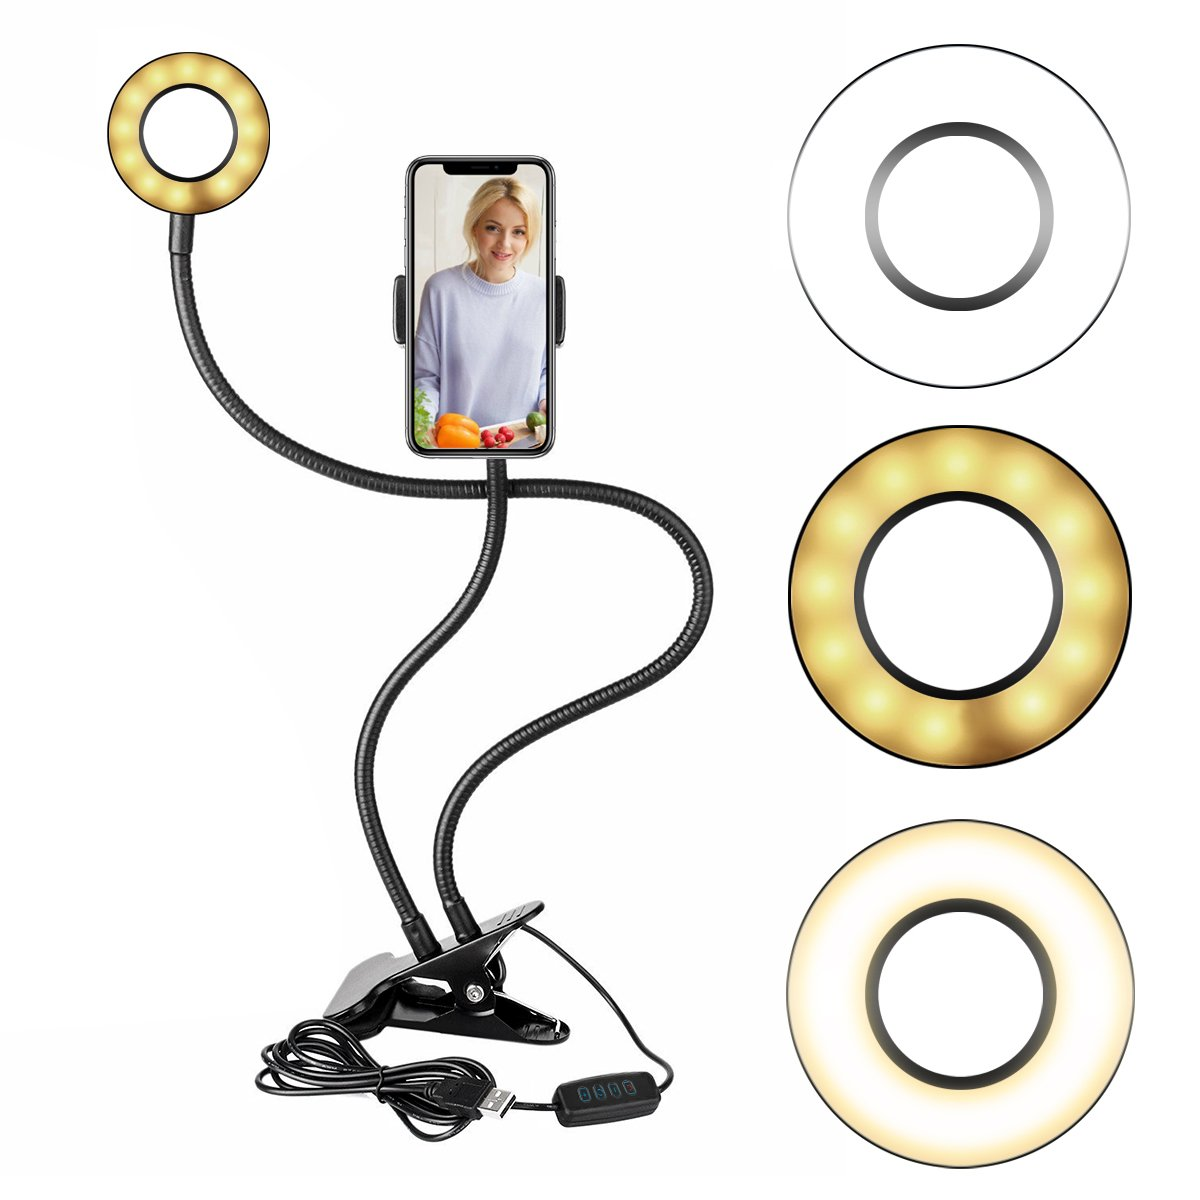 Dimmable Selfie Ring Light with Cell Phone Holder Stand for Live Stream[3-Light Mode][9-Level Brightness], Gooseneck LED Fill In Light Phone Holder for Youtube, Facebook, iPhone X/8/7,6/plus,Samsung